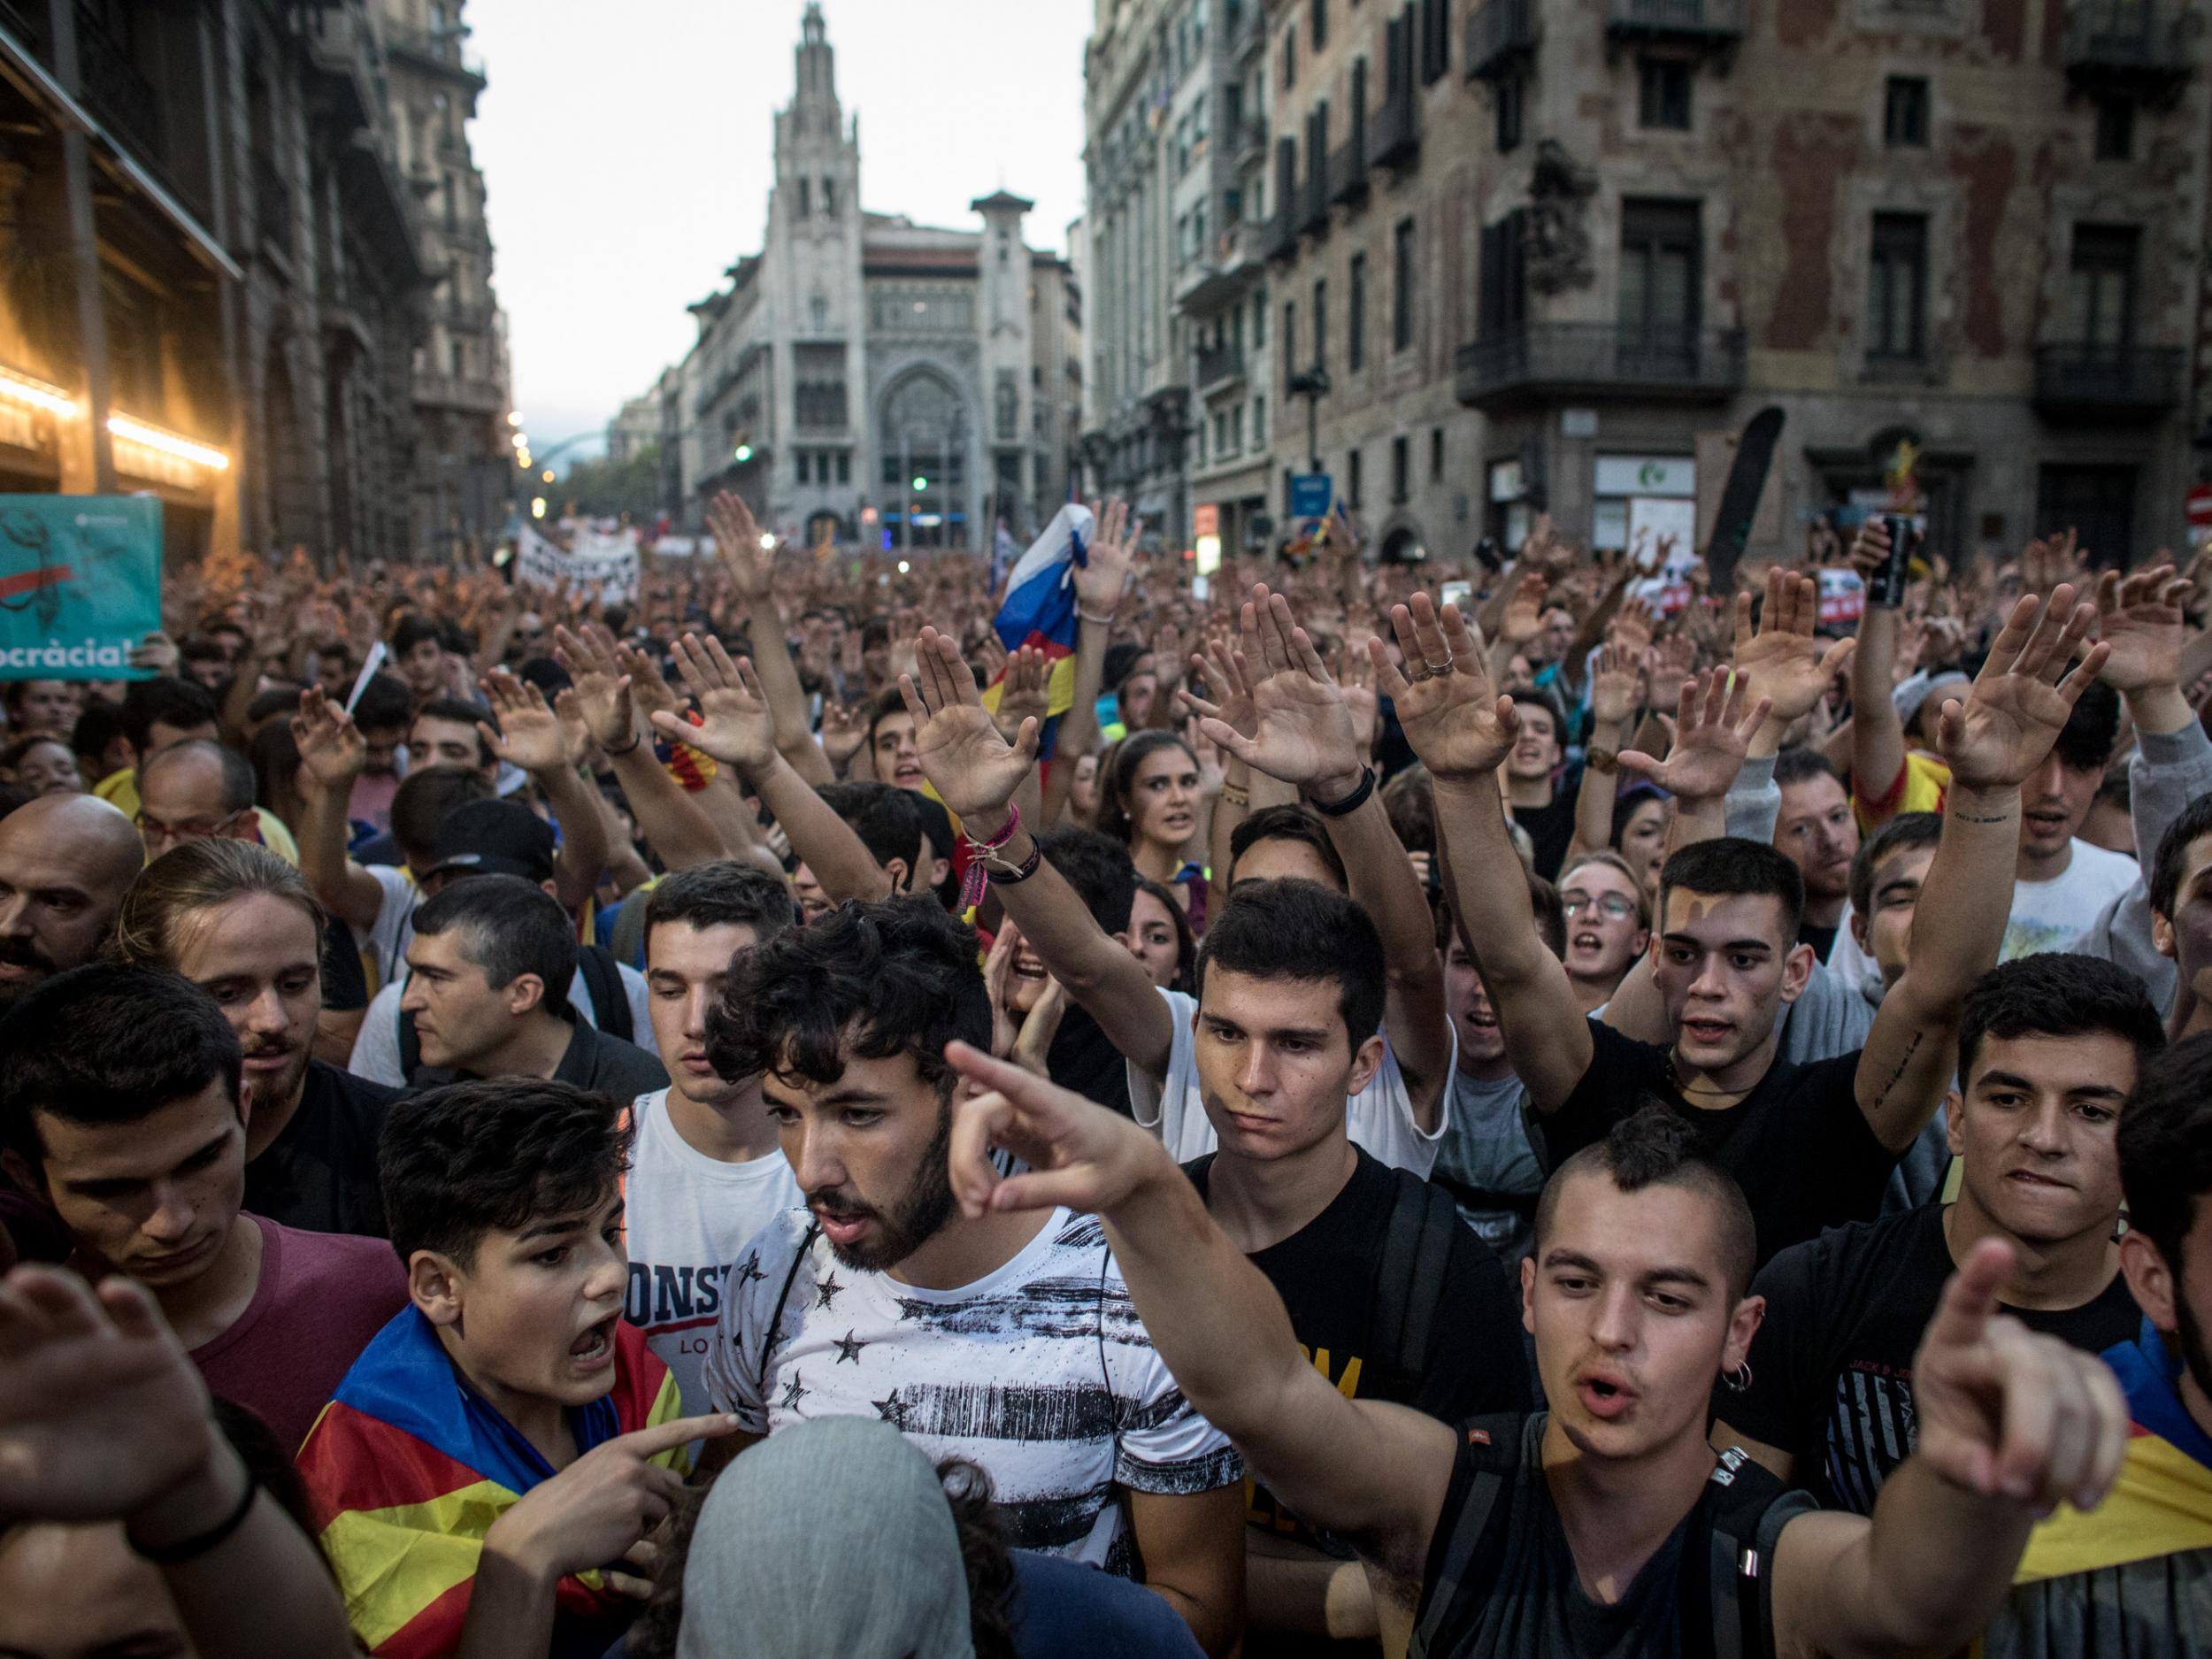 Catalonia independence referendum: Final results show 90% backed secession from Spain